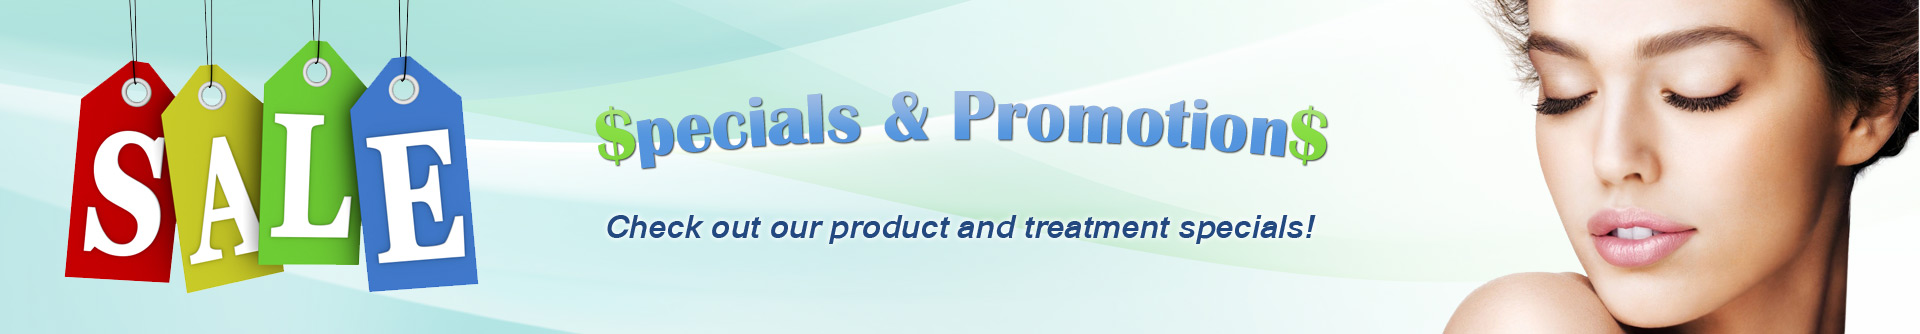 Check out our specials and promotions!